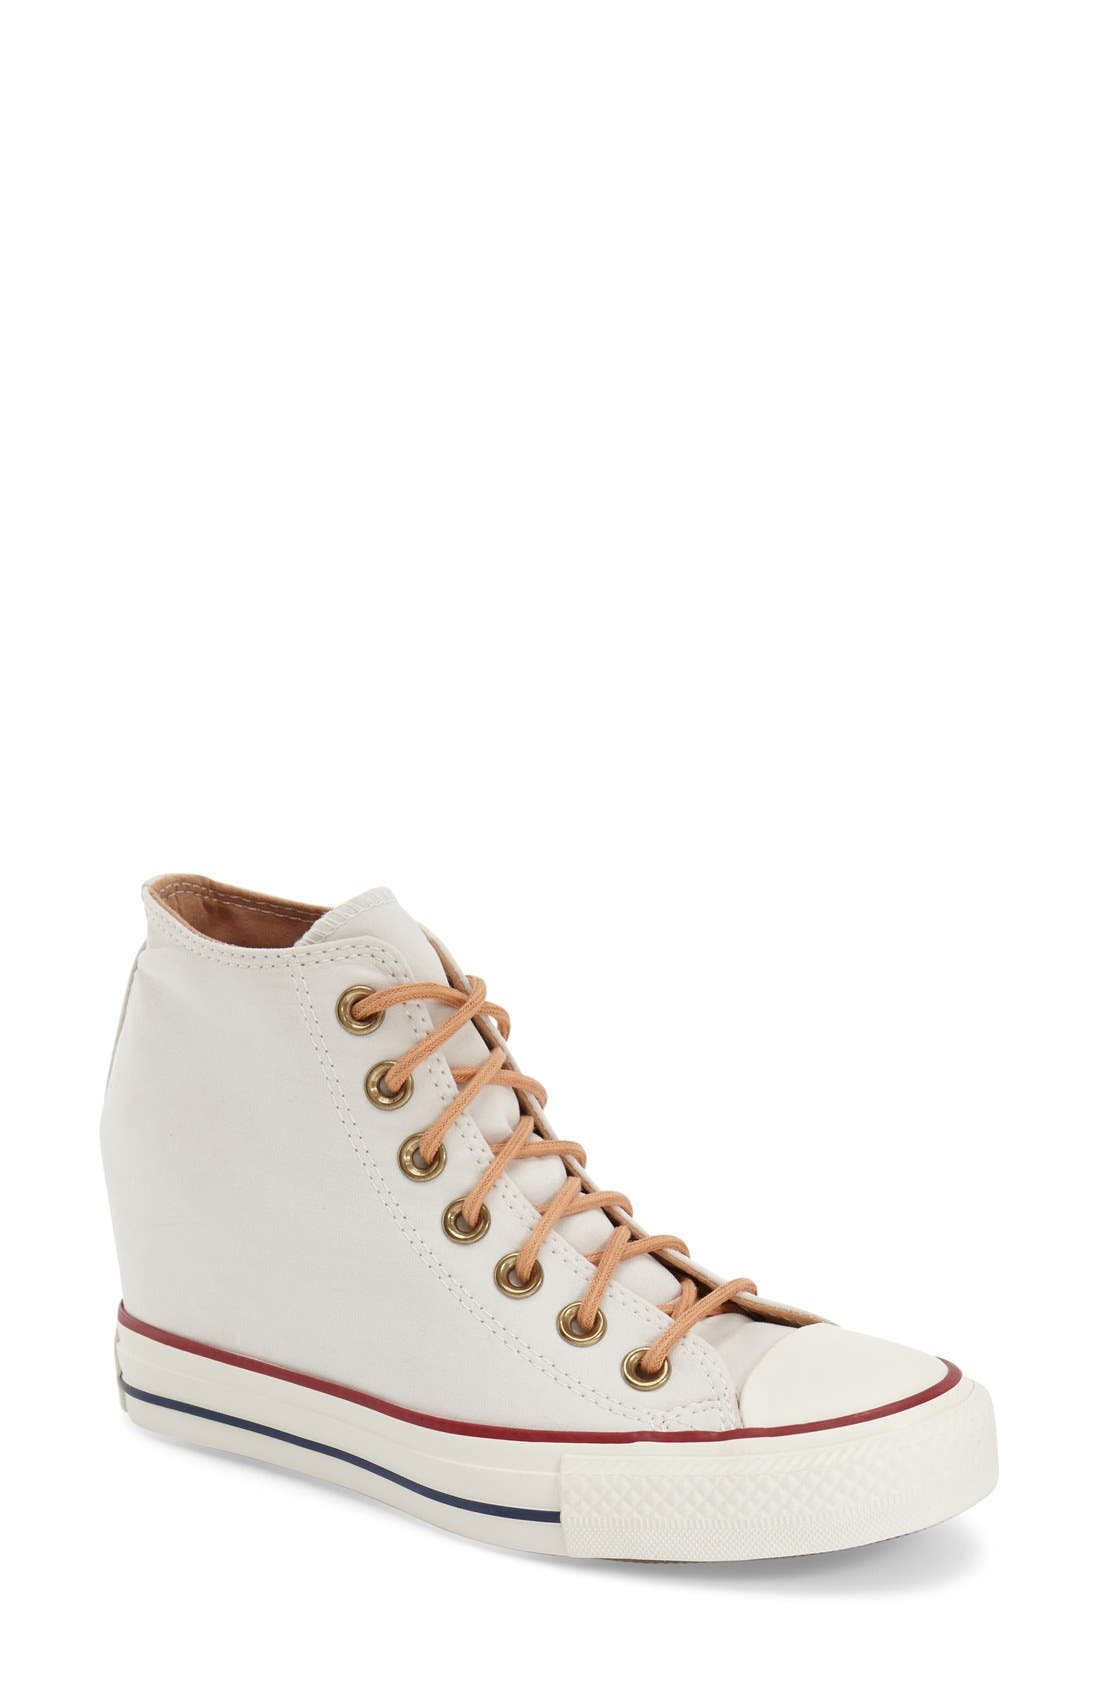 Alternate Image 1 Selected - Converse Chuck Taylor® All Star® 'Lux' Hidden Wedge High Top Sneaker (Women)